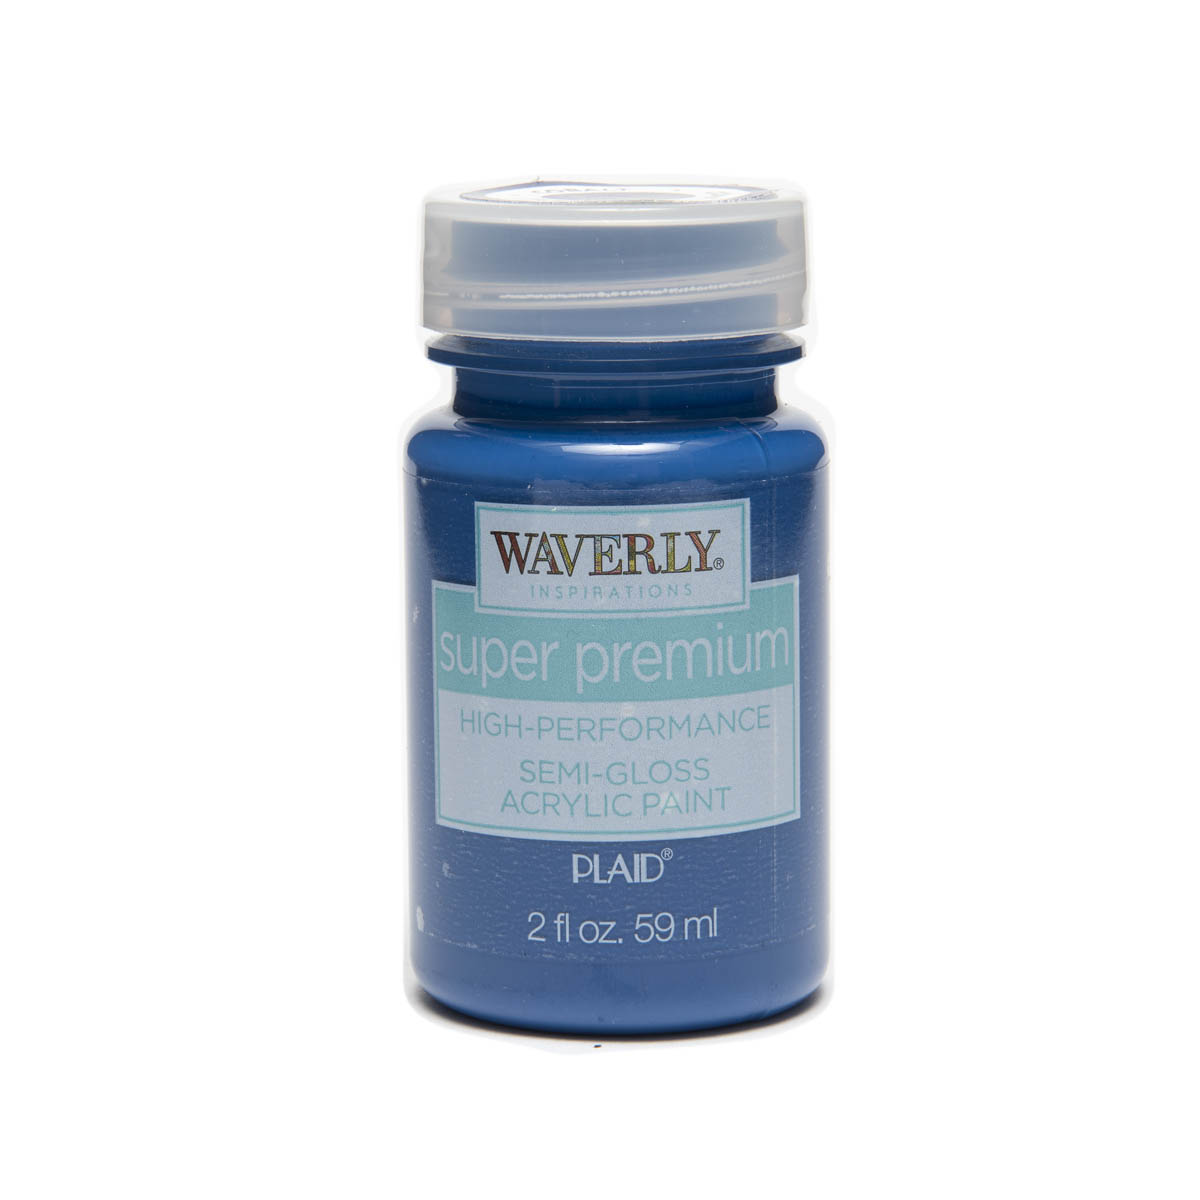 Waverly ® Inspirations Super Premium Semi-Gloss Acrylic Paint - Cobalt Hue, 2 oz.